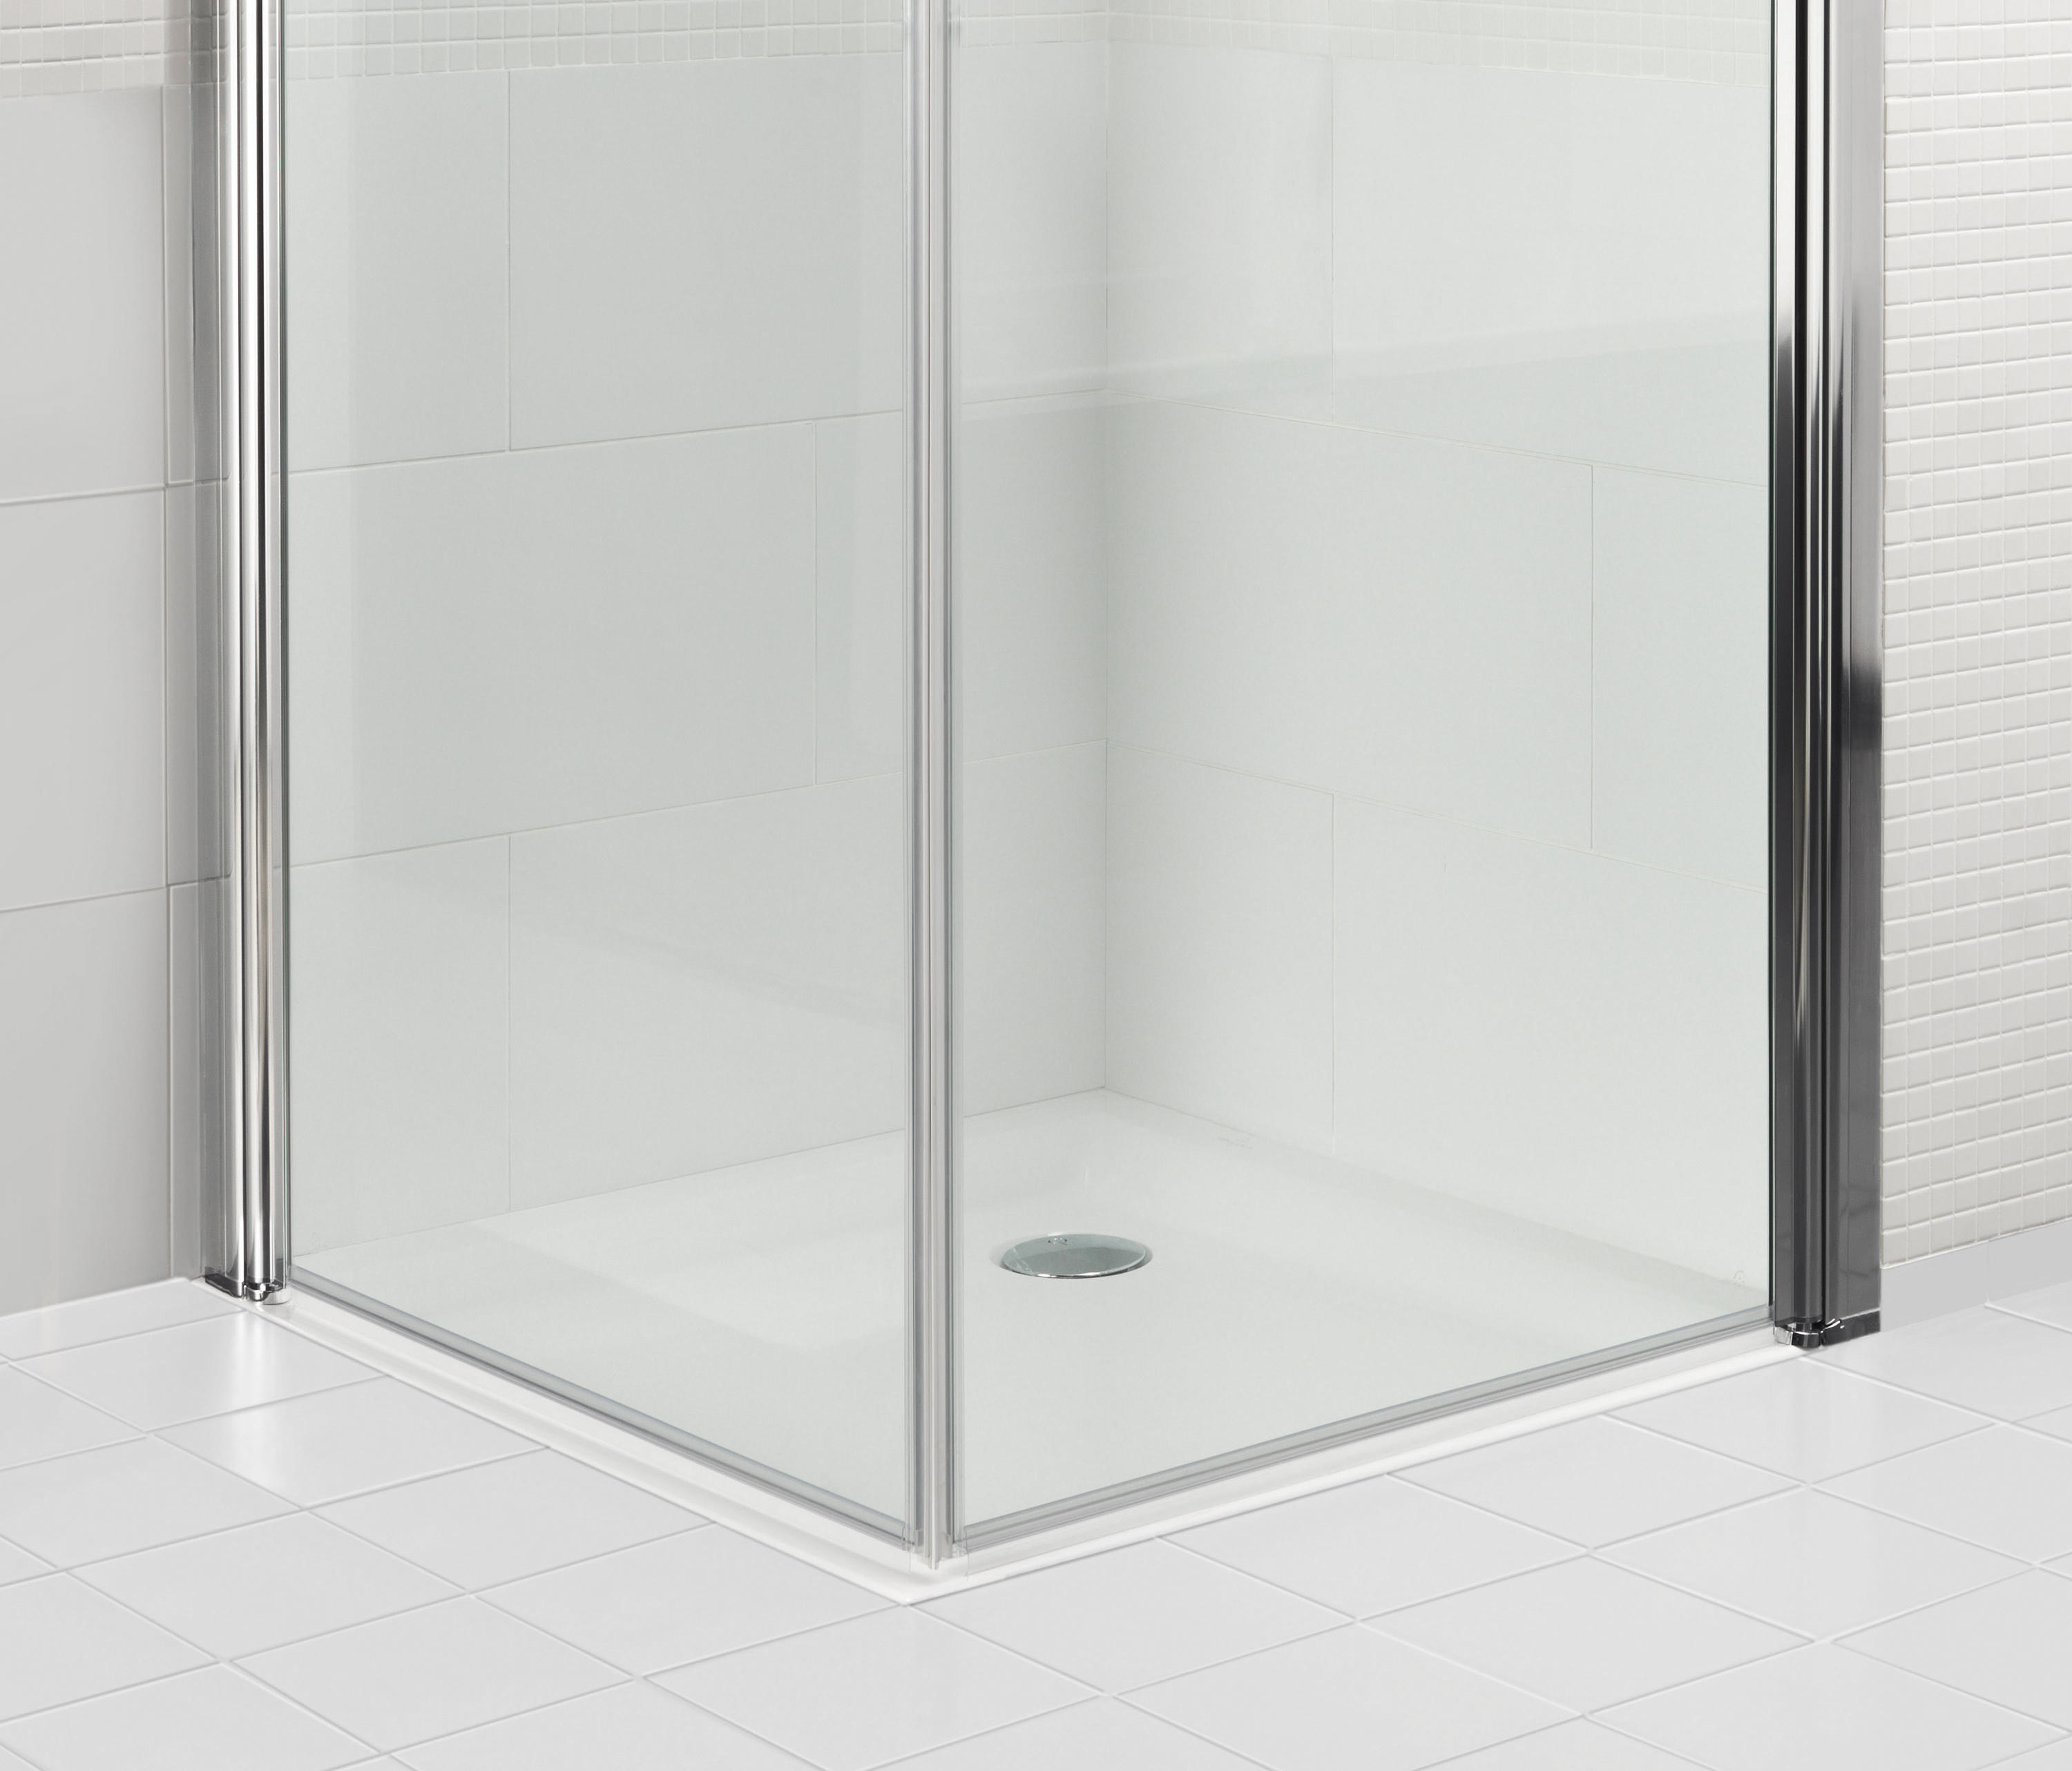 shower glass bahrain